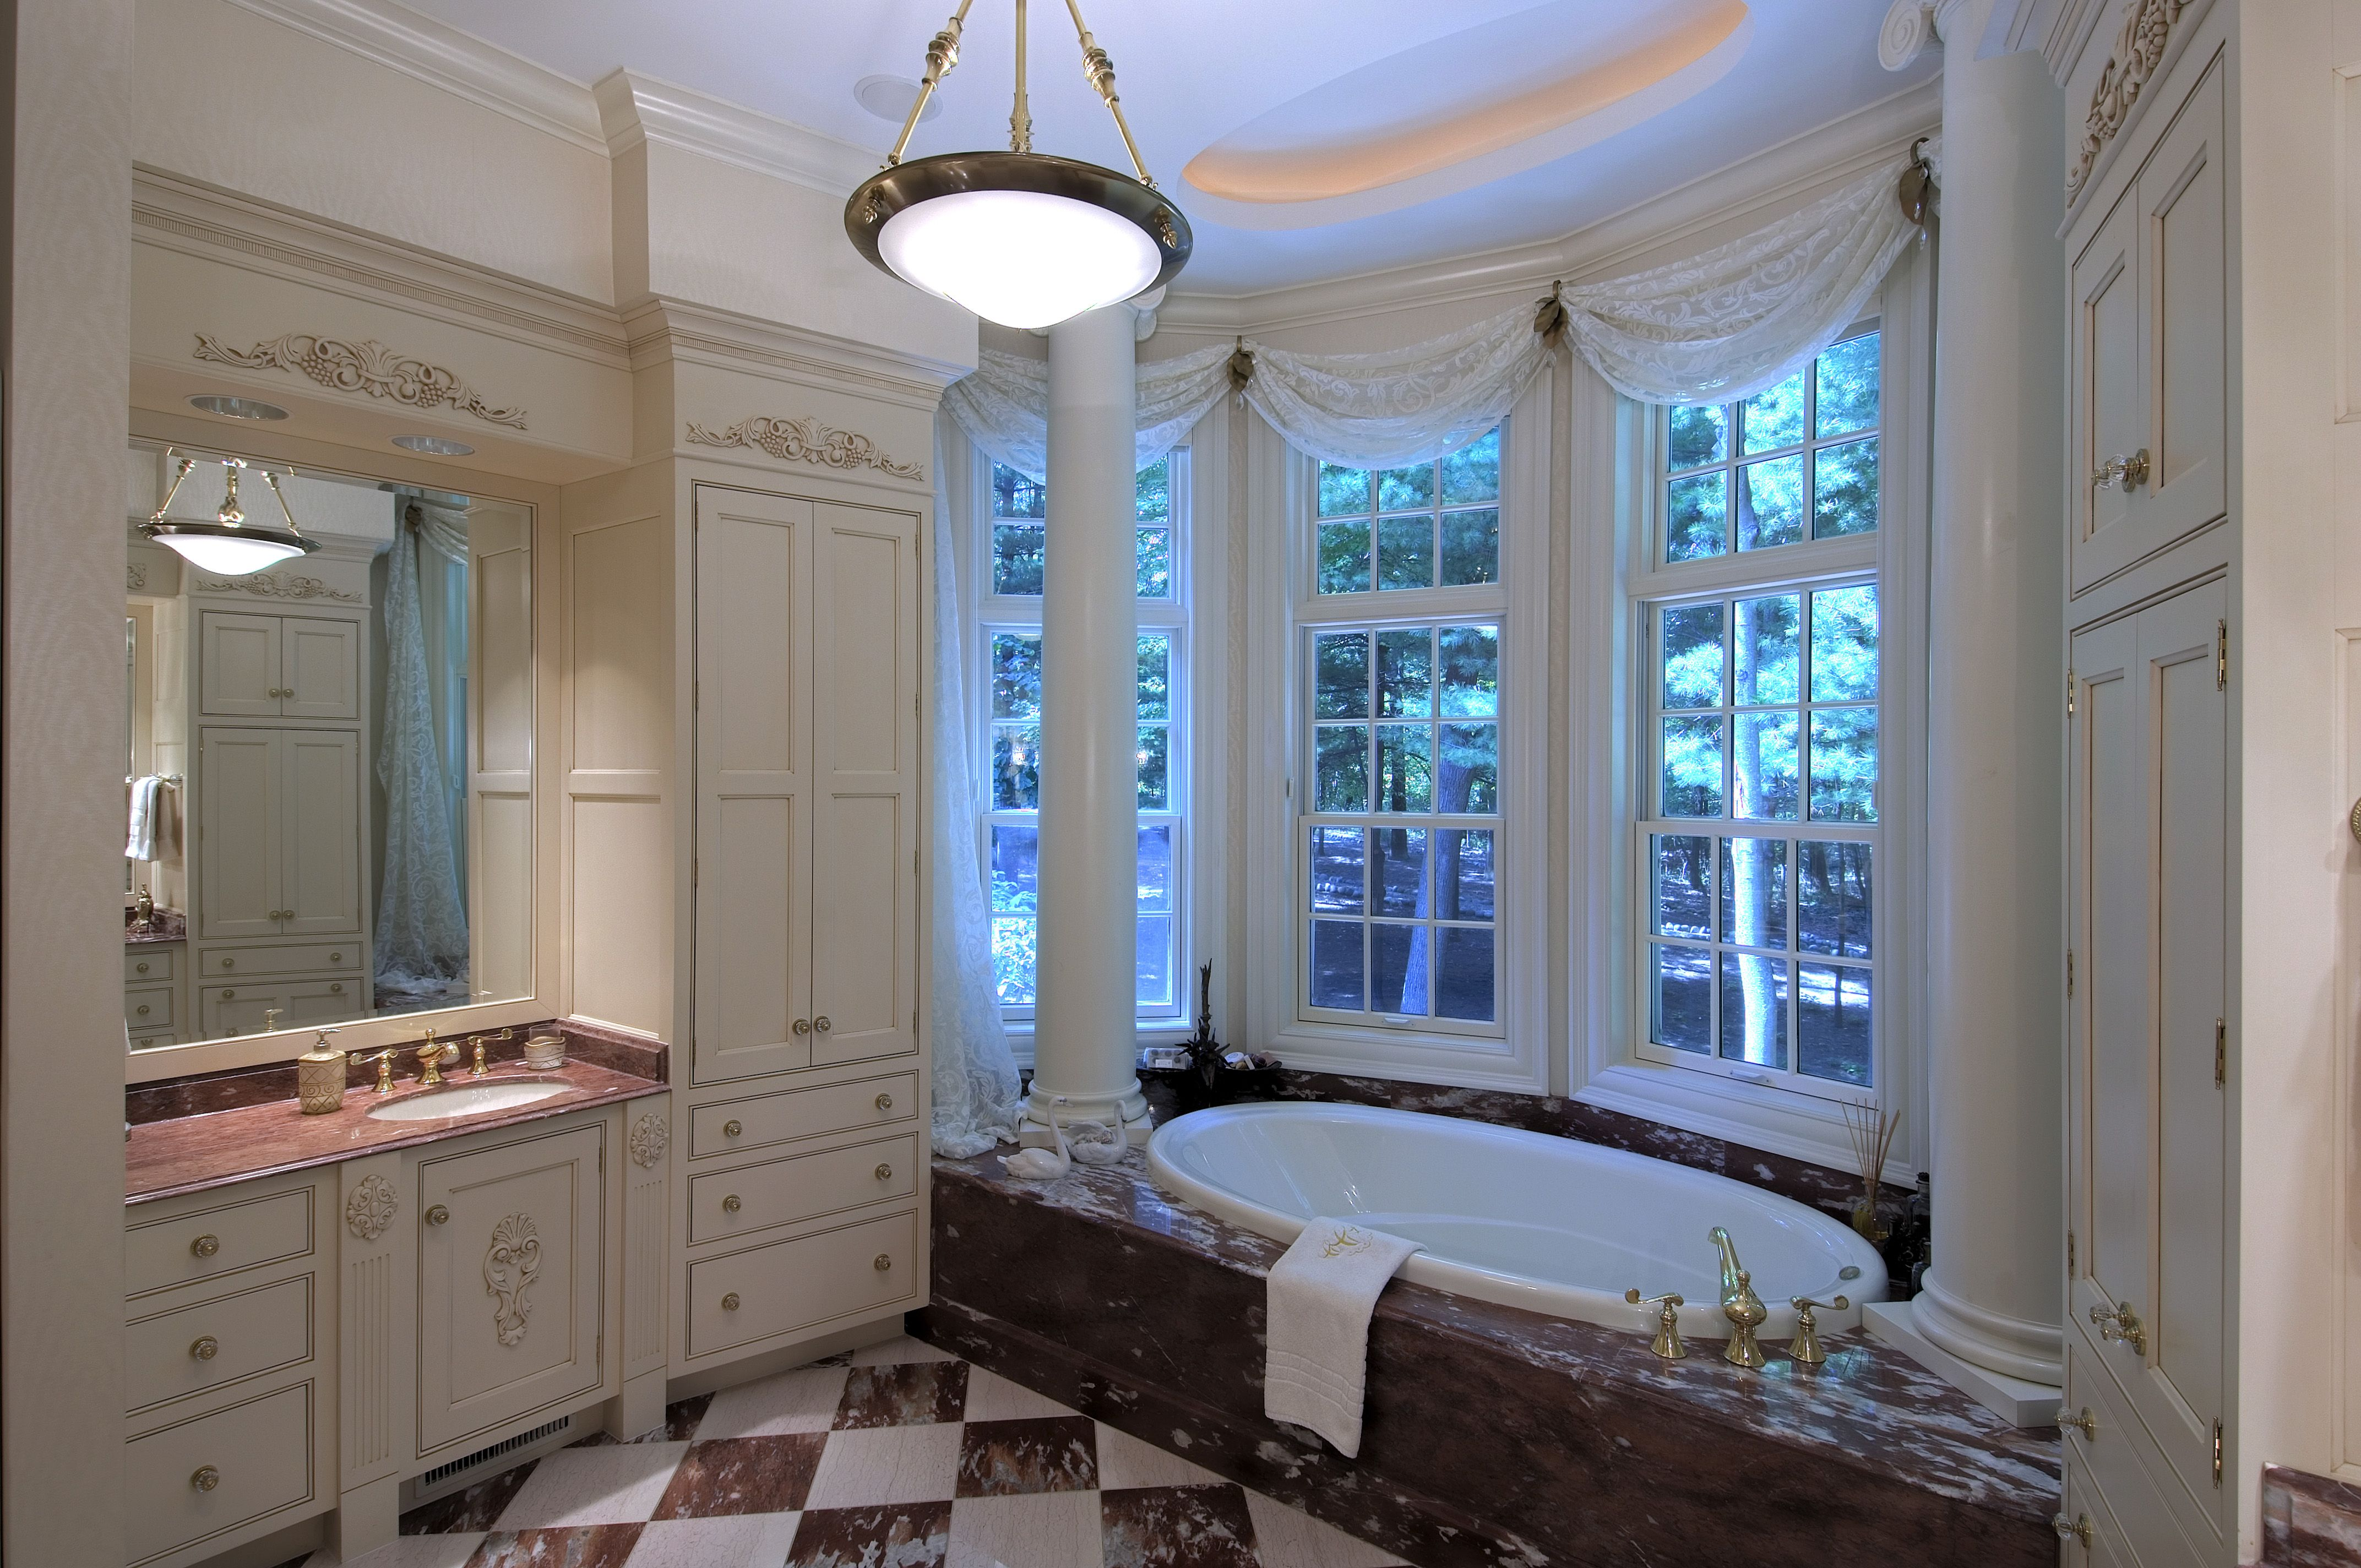 Marble tub deck with drop in bath tub and decorative columns ...